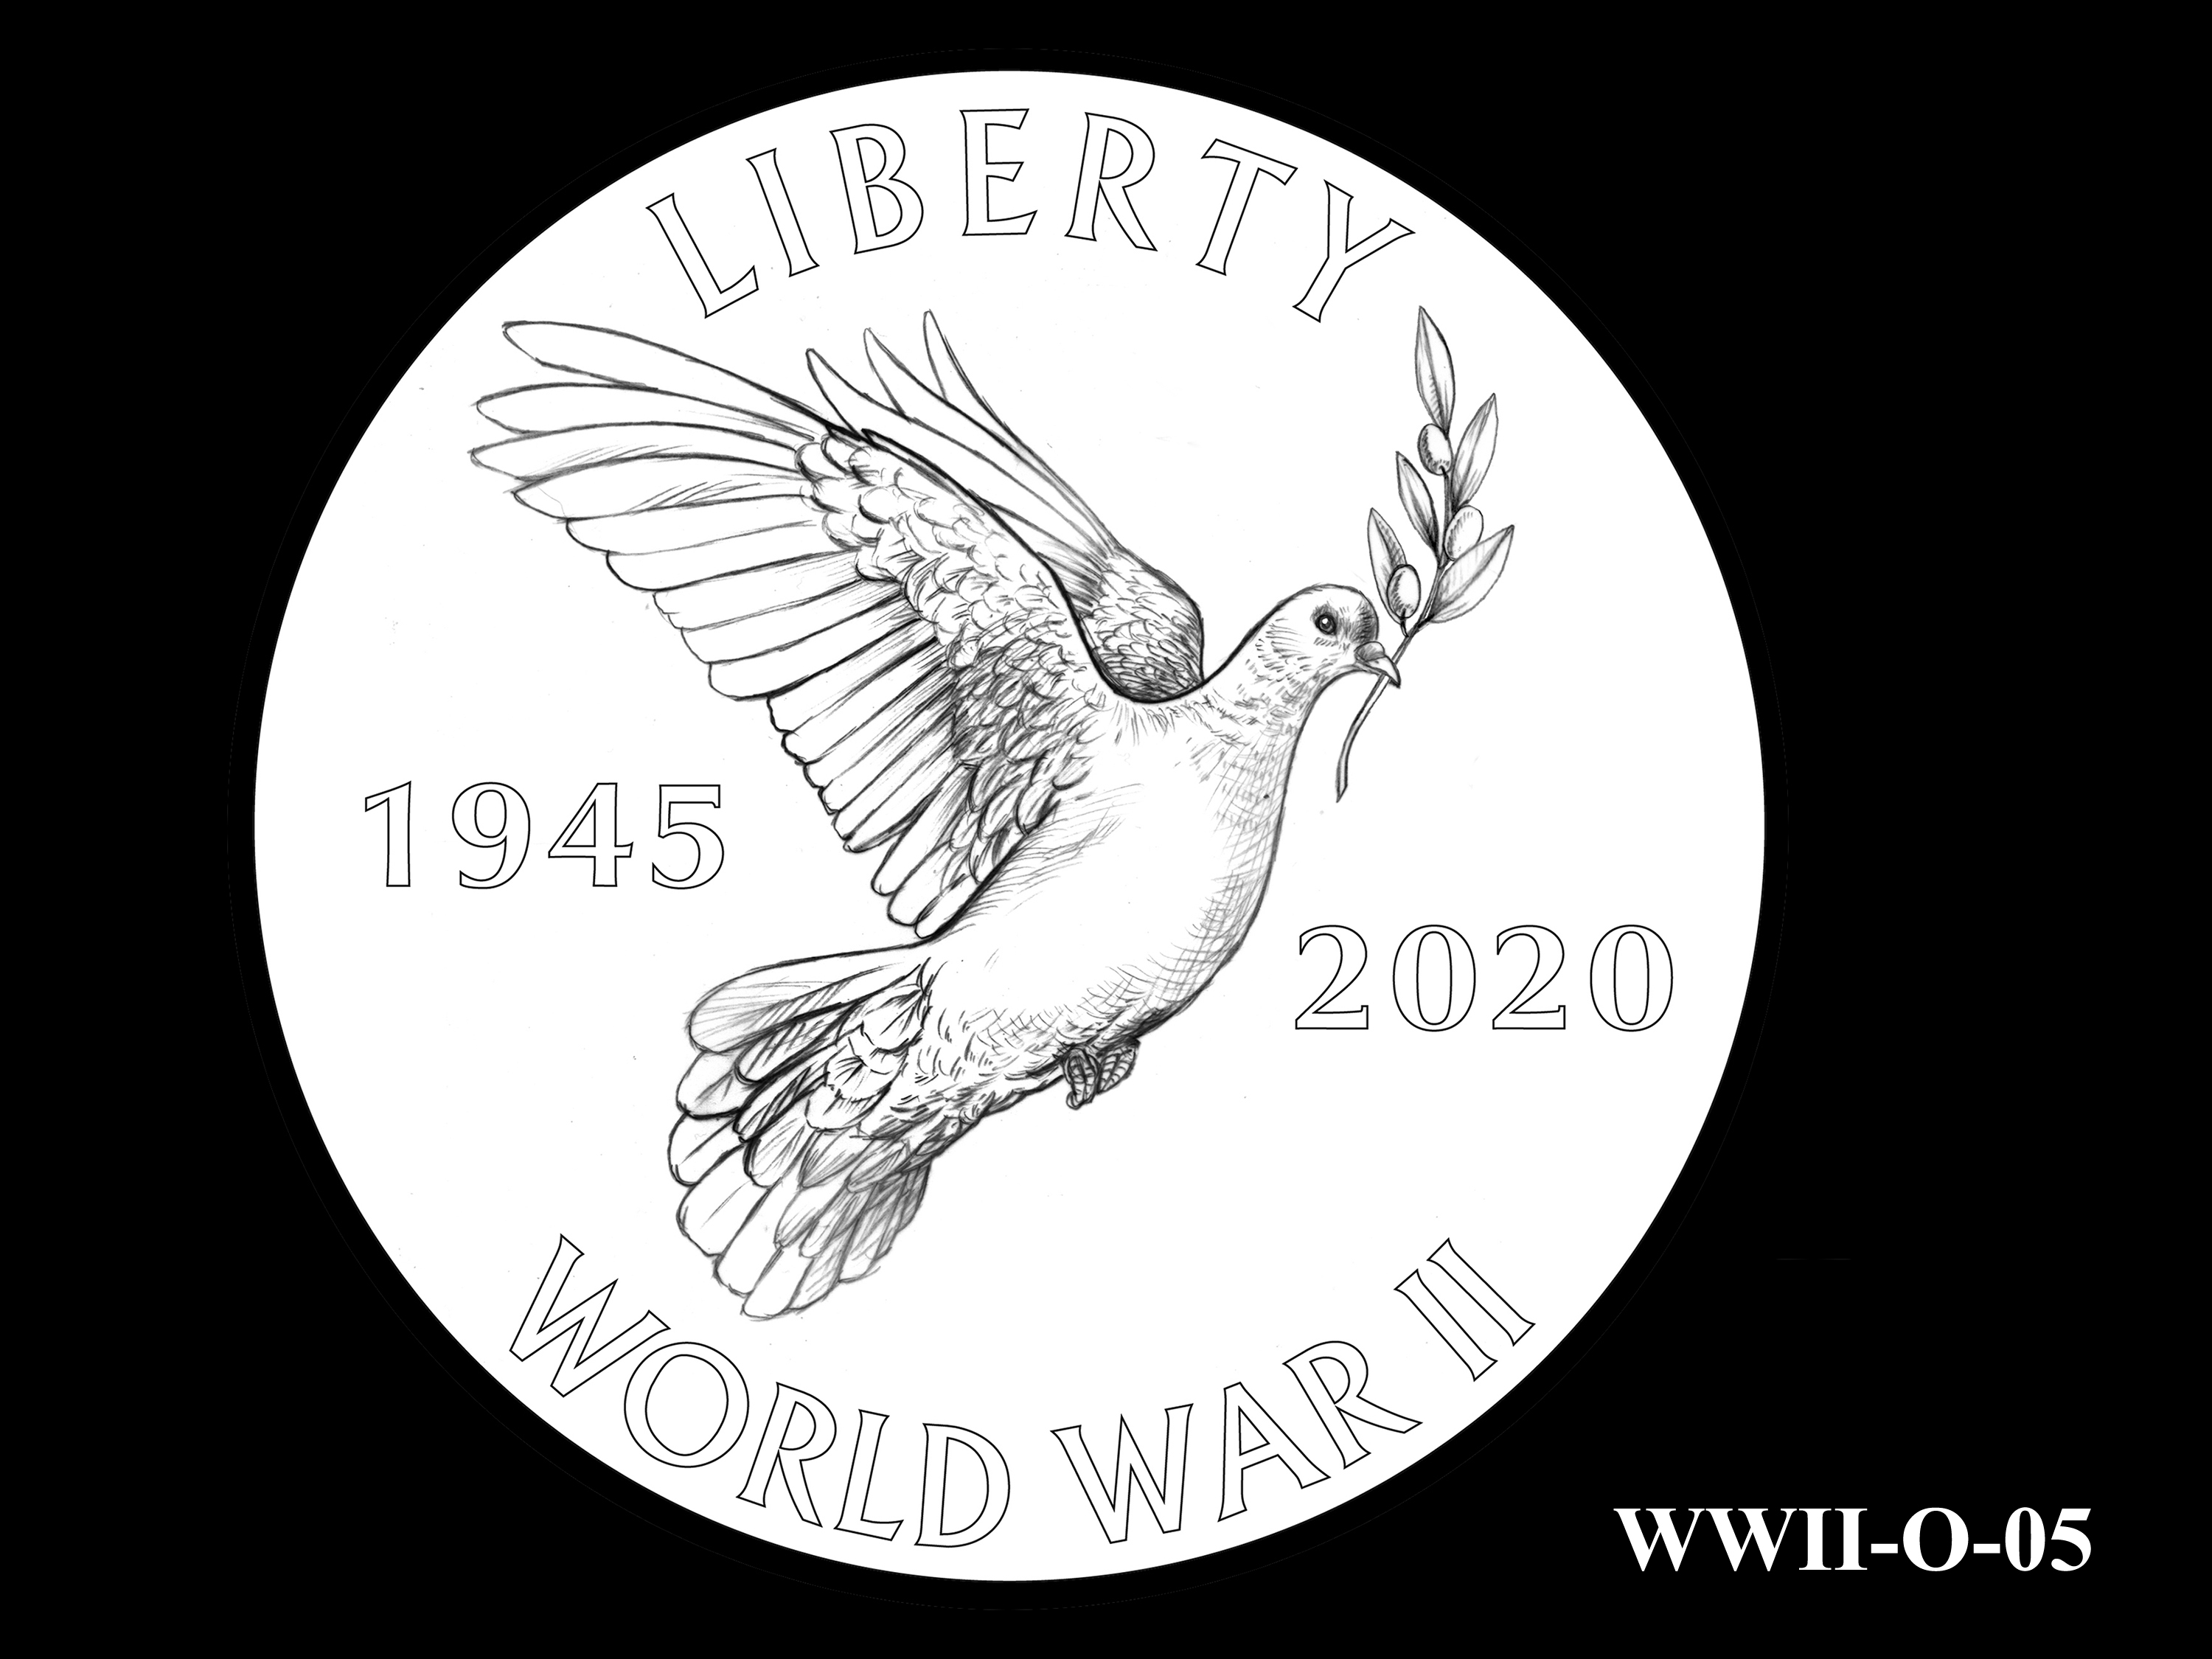 WWII-O-05 --End of World War II 75th Anniversary Program - Obverse